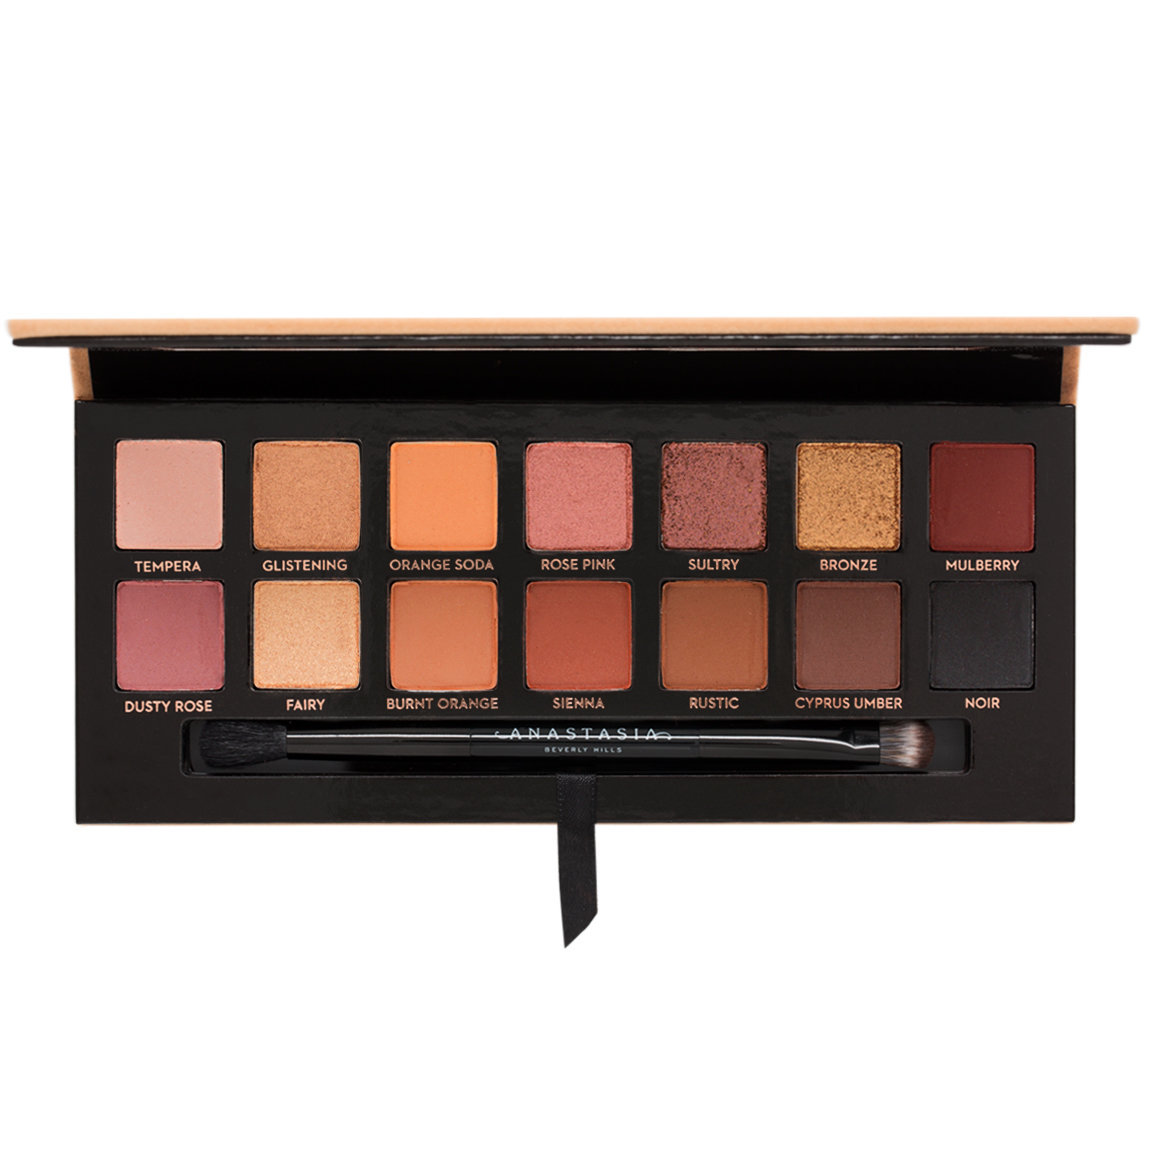 10 Gorgeous Eyeshadow Palettes For Fall You Will Adore